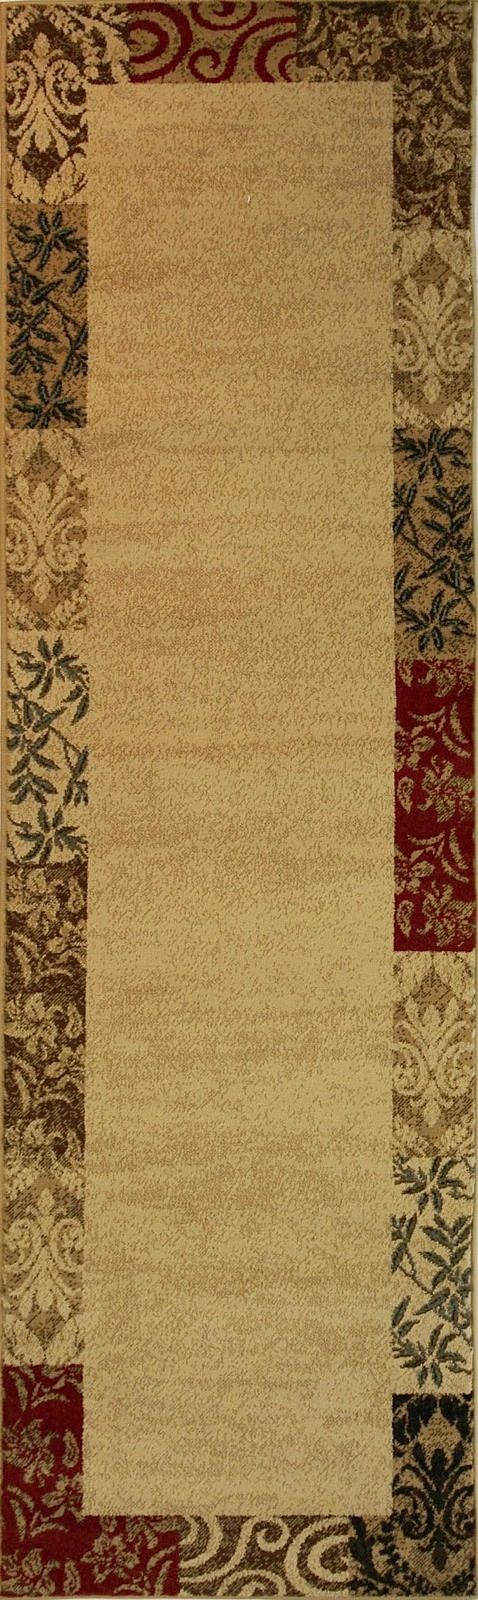 well woven barclay vane willow damask transitional area rug collection